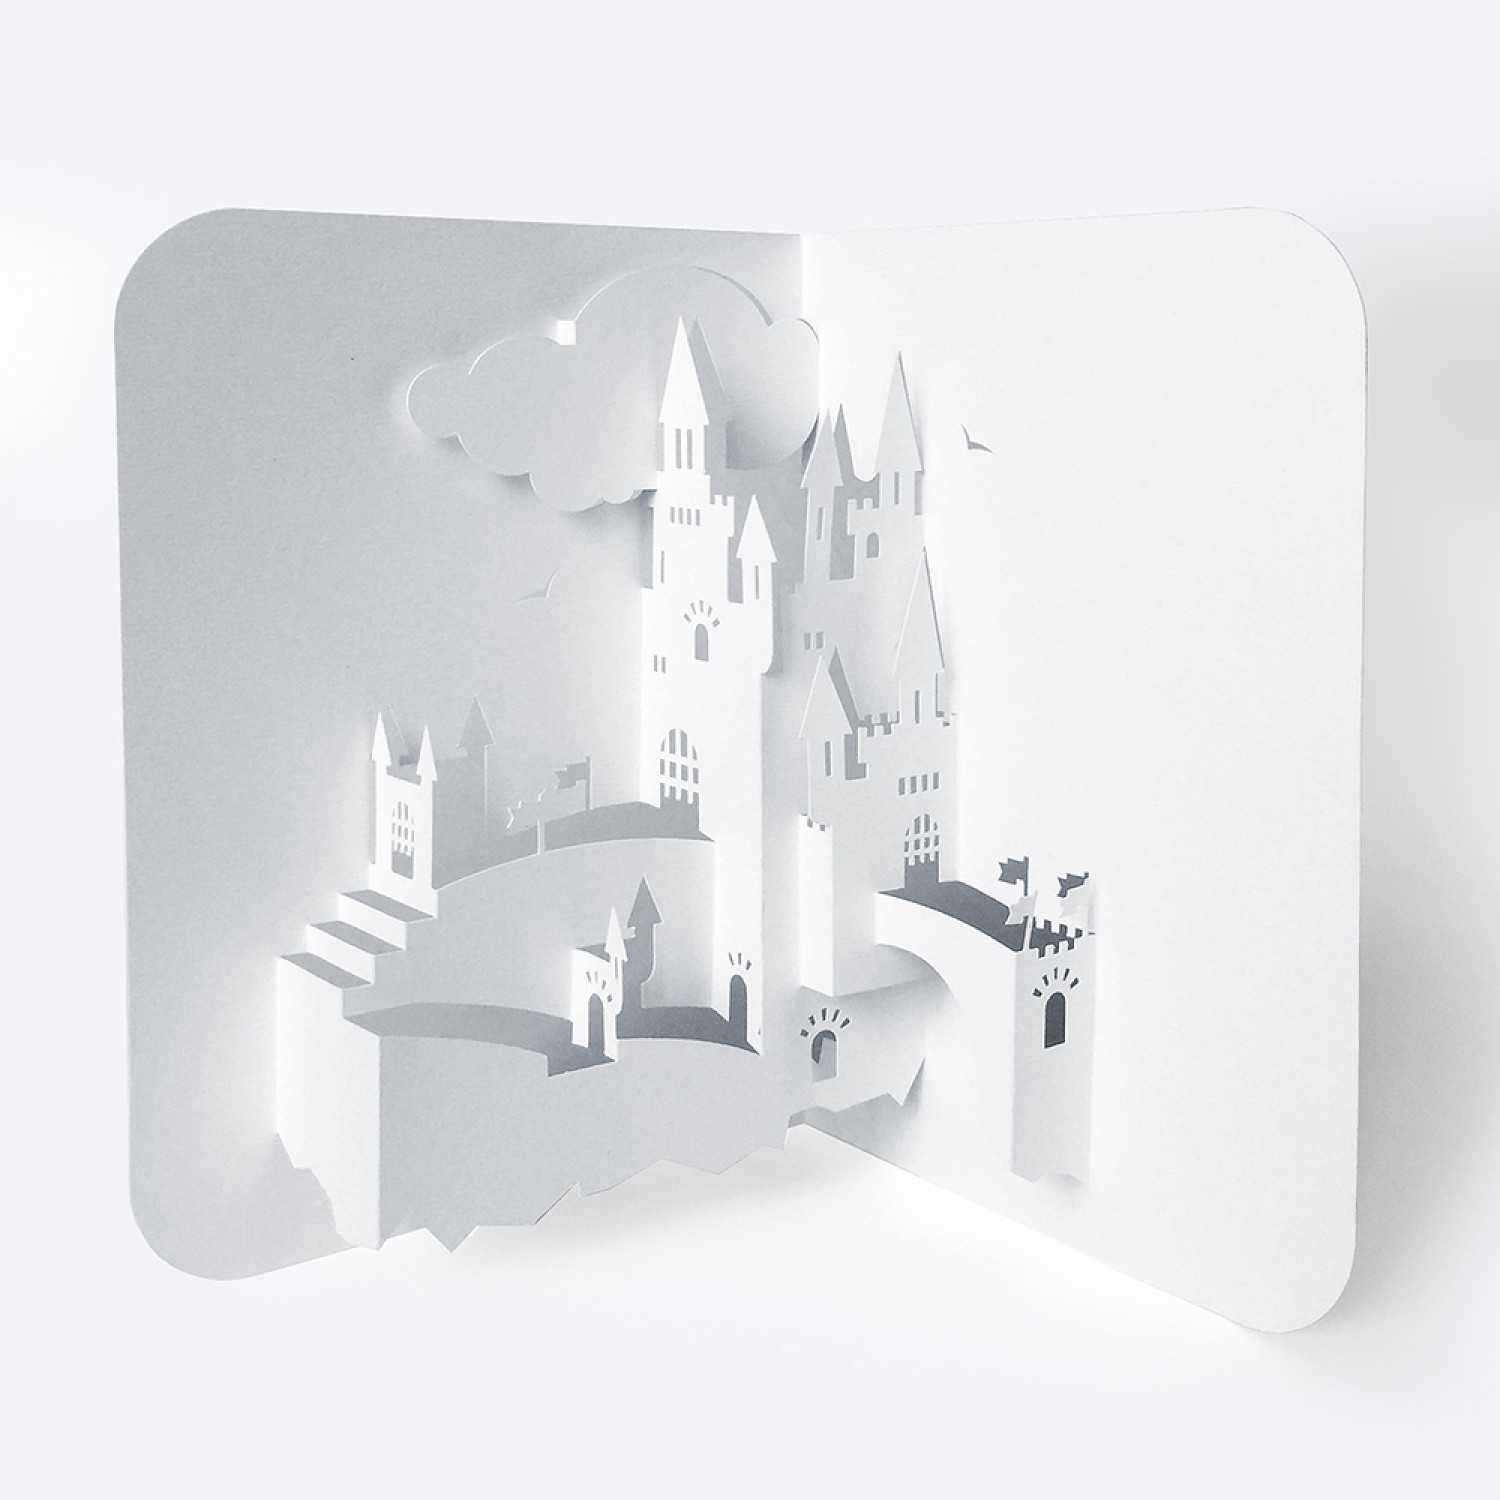 002 Pop Up Cards Templates Template Ideas Castle5 Shocking For Templates For Pop Up Cards Free